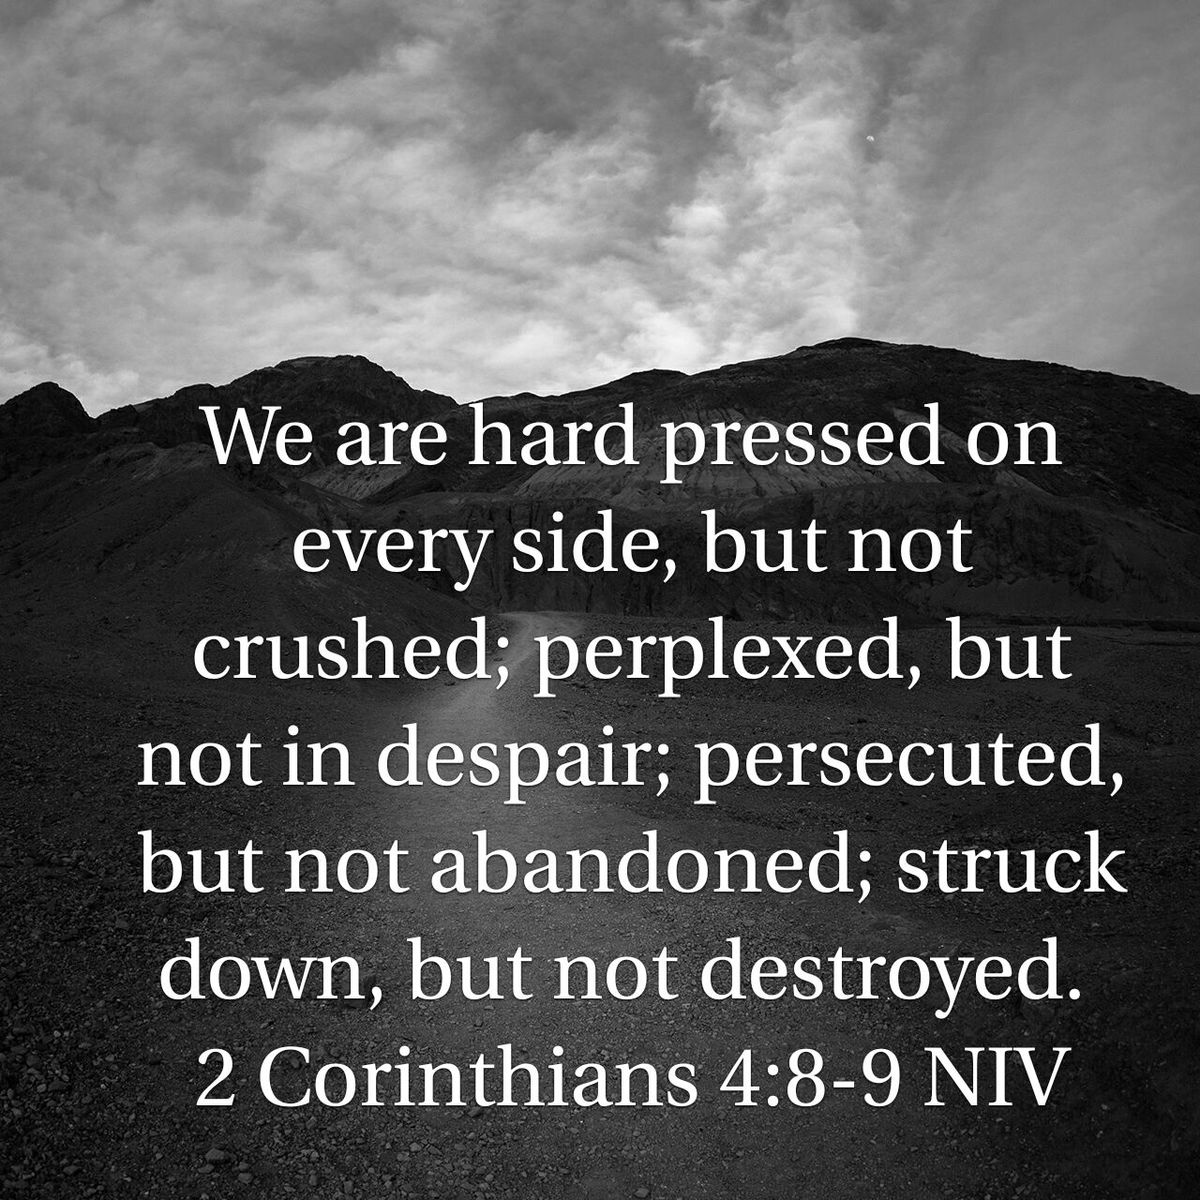 Standing Firm Together - 2 Corinthians 4:8-12 - Resilience